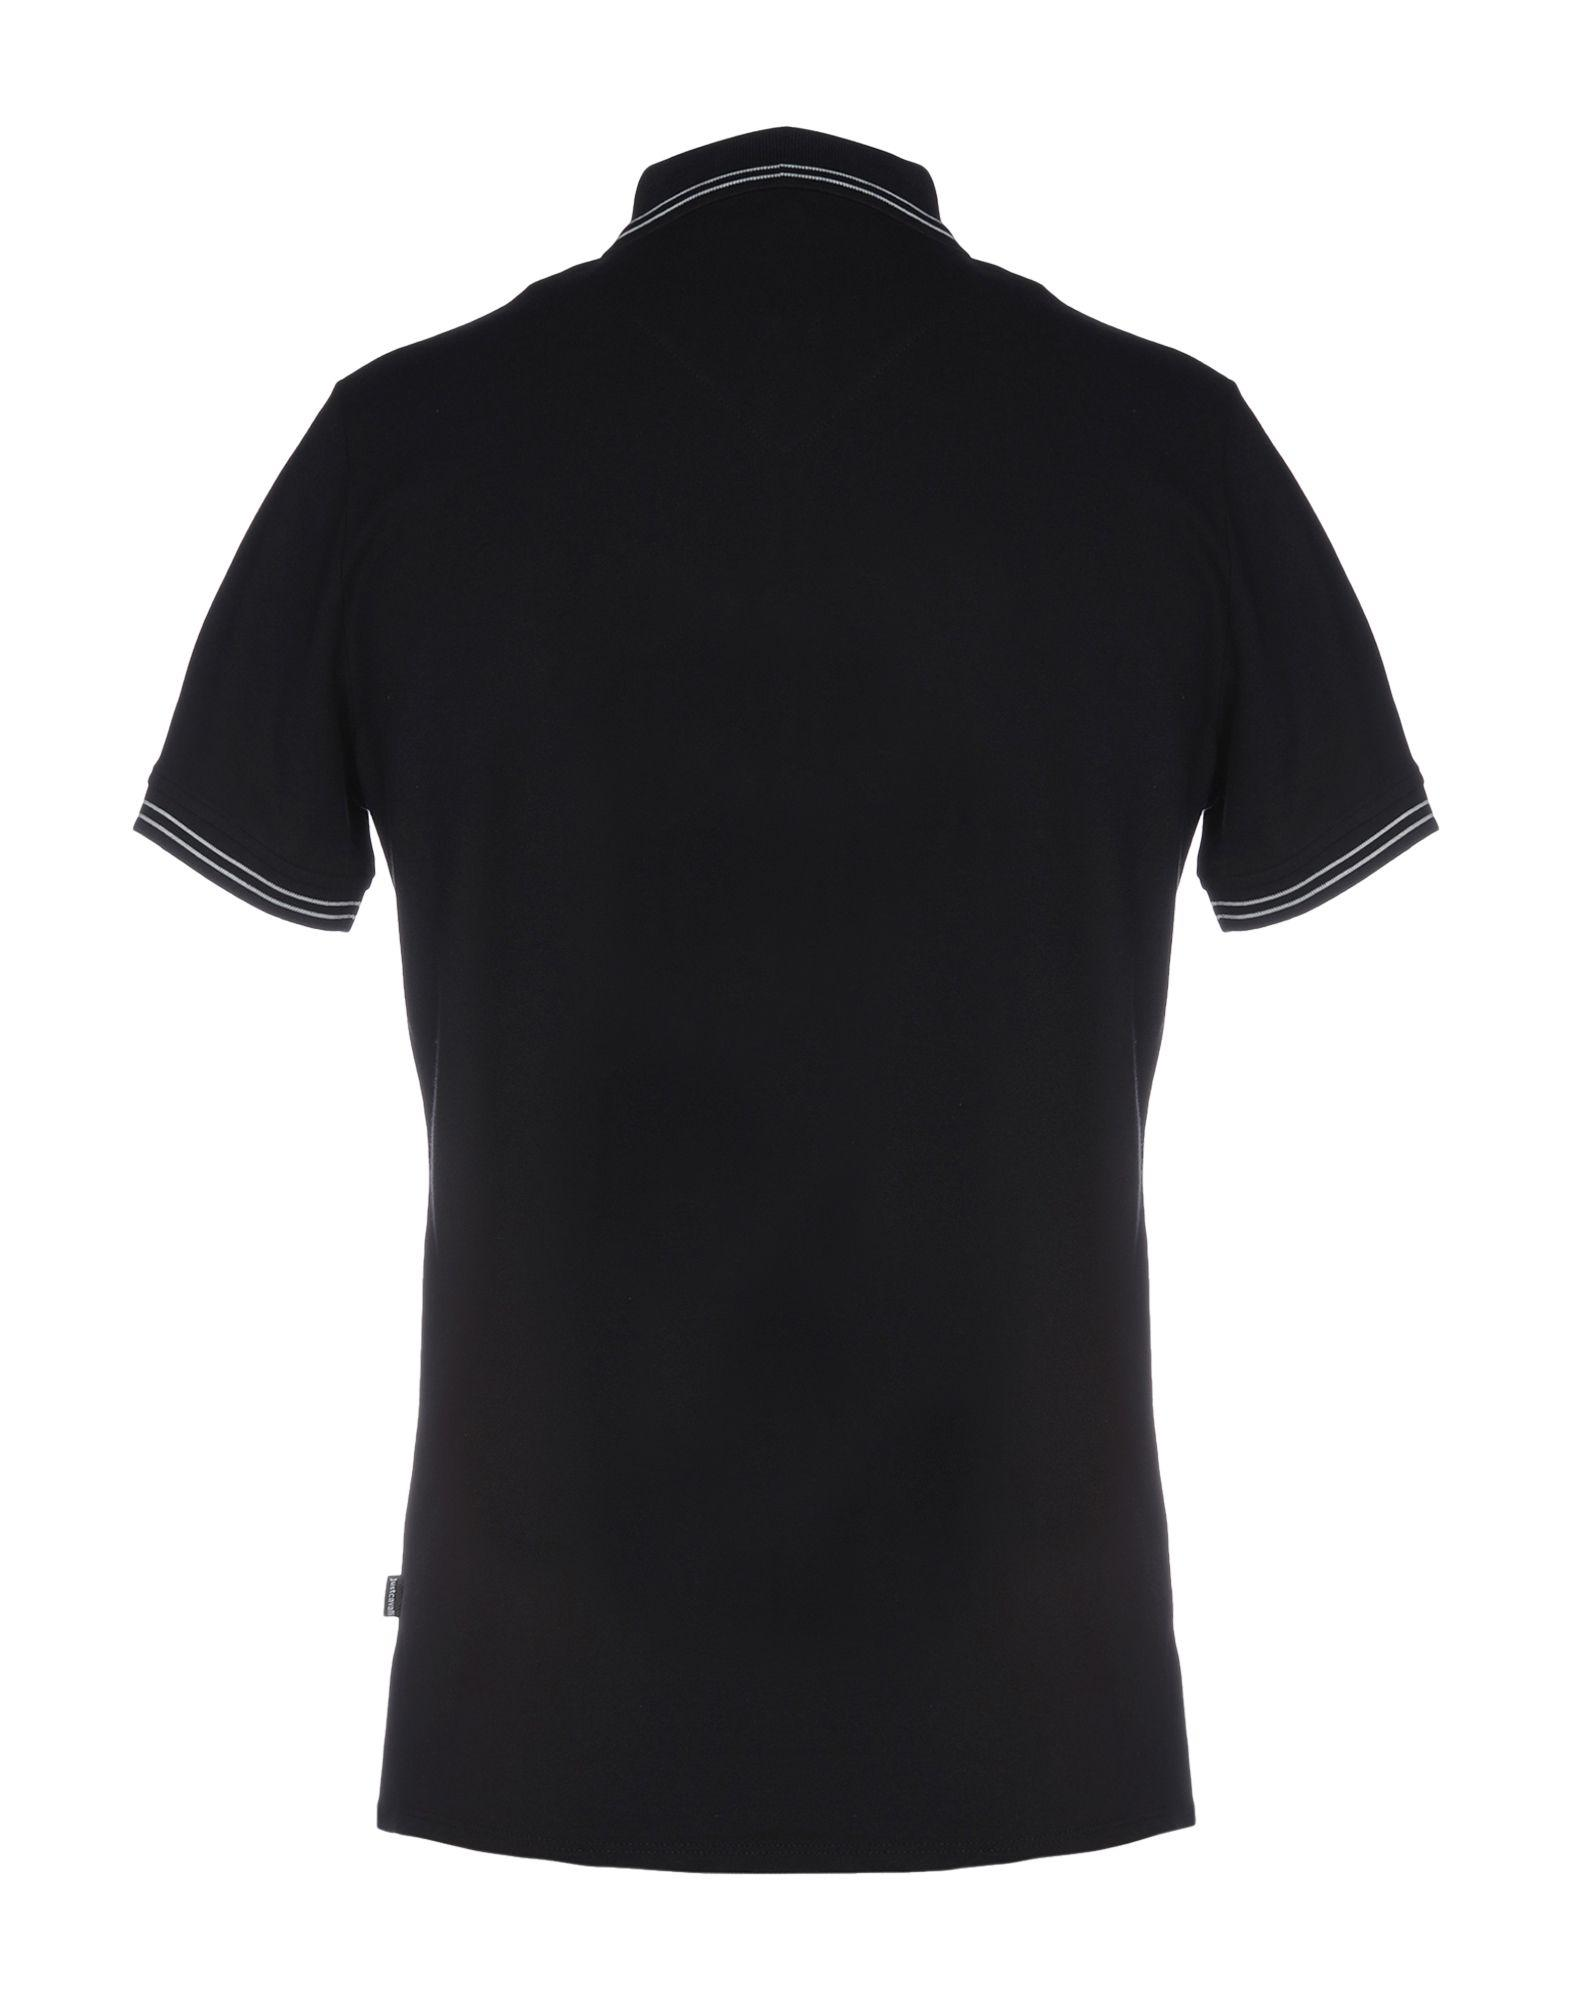 8cfc9c58 Just Cavalli Polo Shirt in Black for Men - Lyst